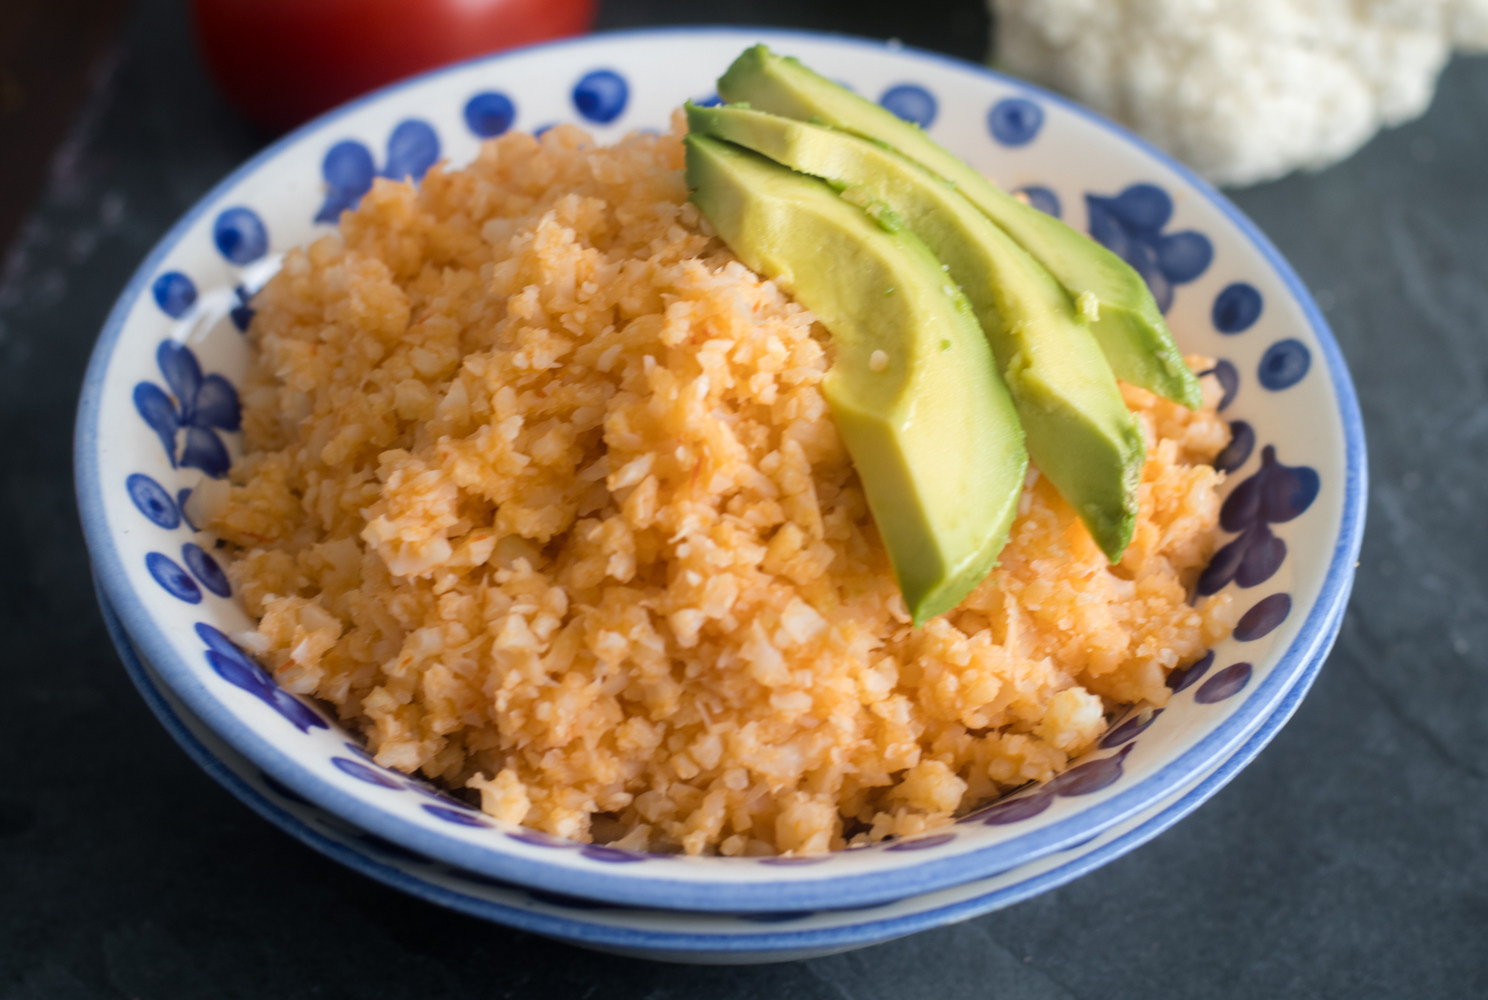 Mexican Cauliflower Rice is a heathy alternative to traditional rice recipes.